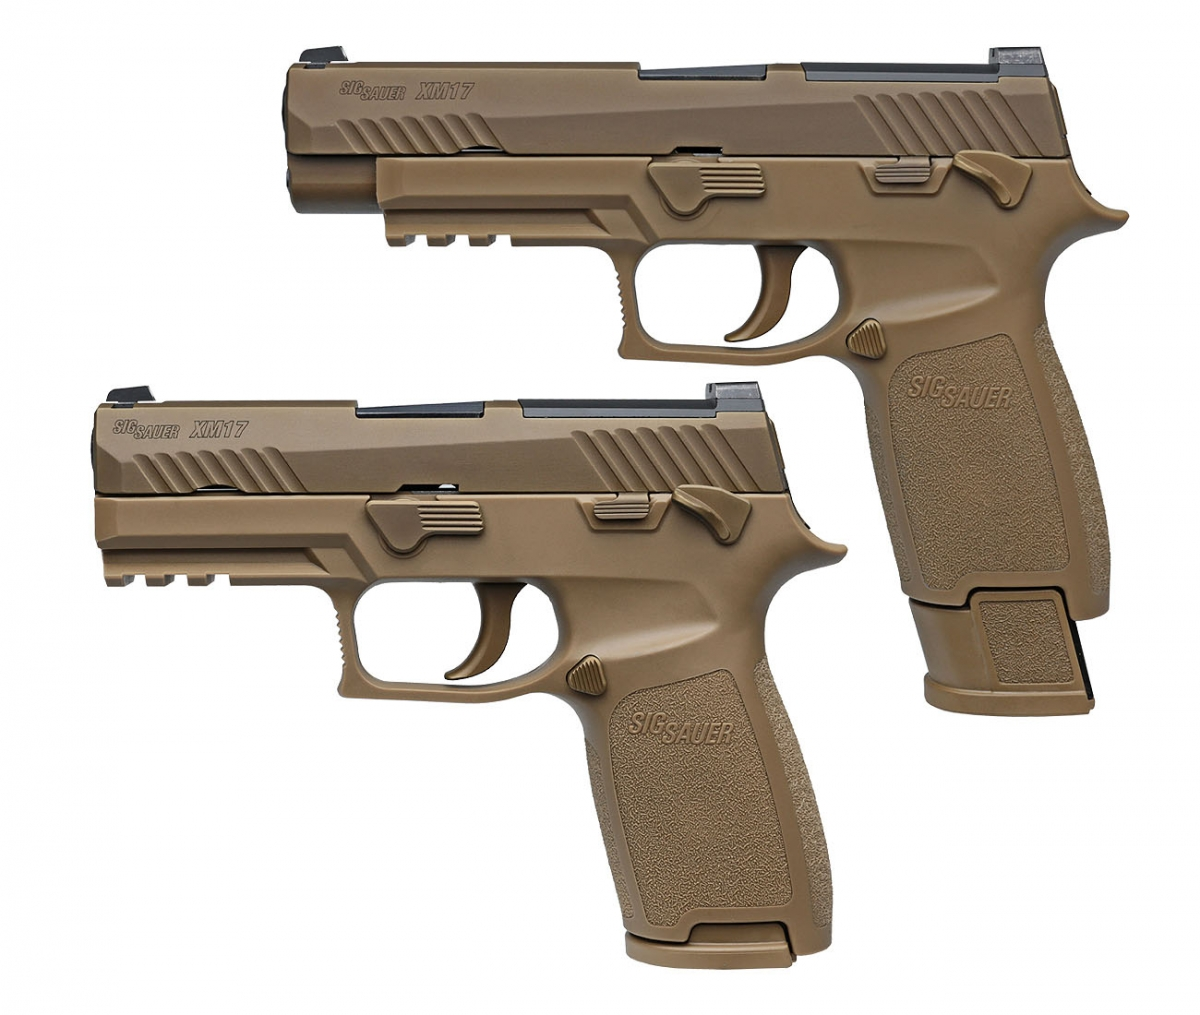 The SIG Sauer M17/M18 MHS is a modular P320-based pistol, built on a standard frame and compatible with different calibers, slides, barrels and magazines to adapt itself to different operative needs